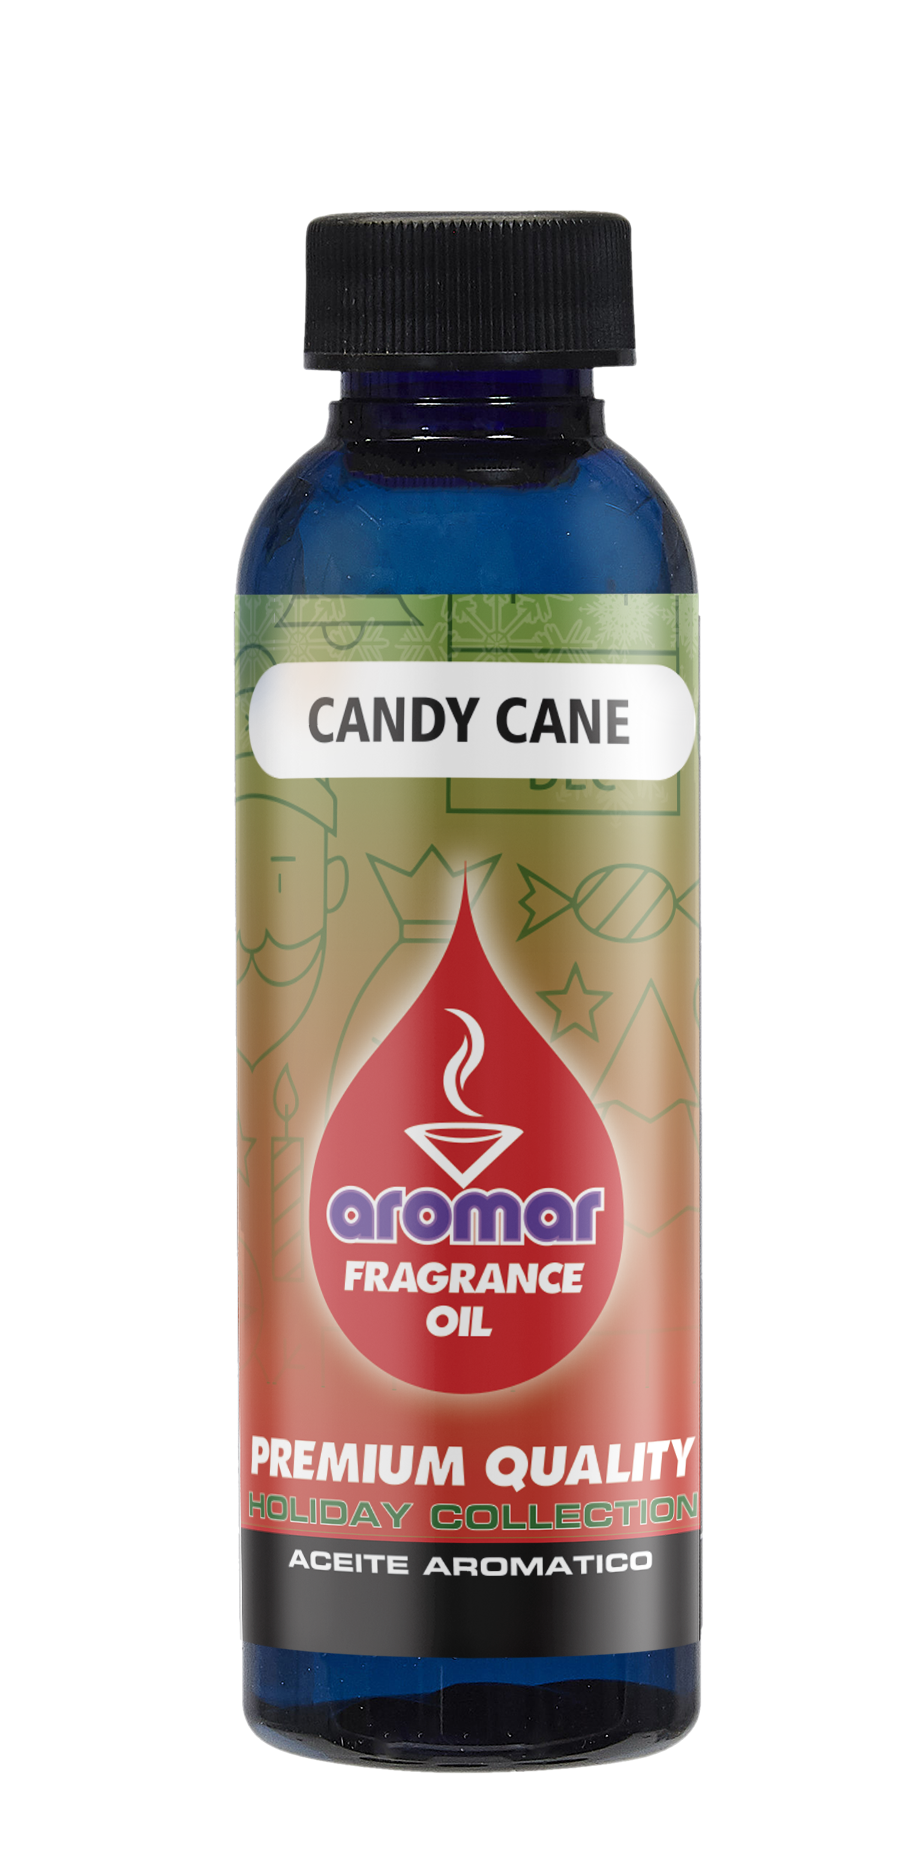 Candy Cane Aromatic Oil